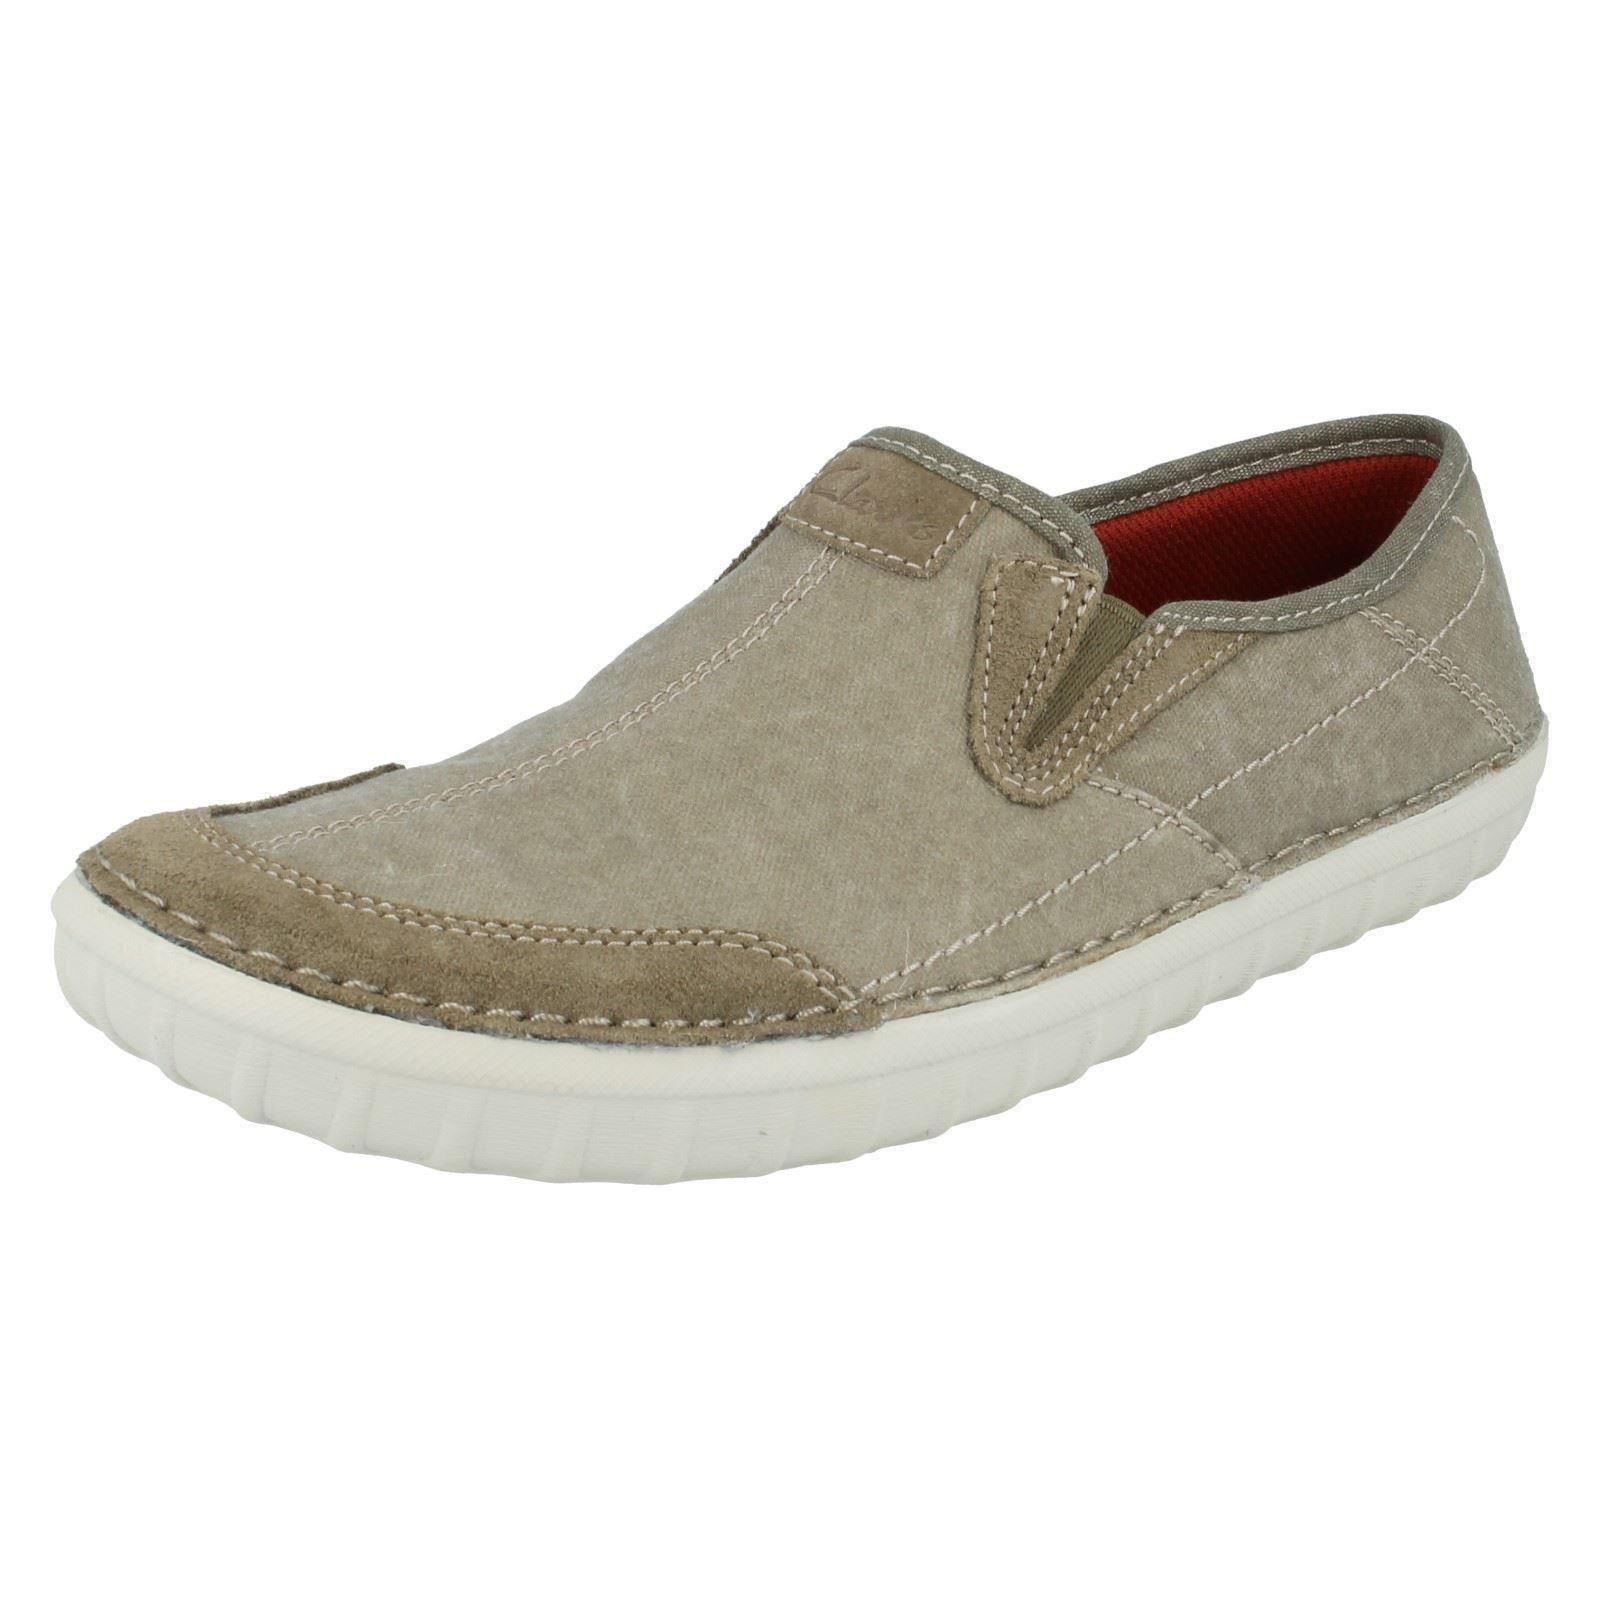 s clarks casual slip on casual shoes kornel ride ebay